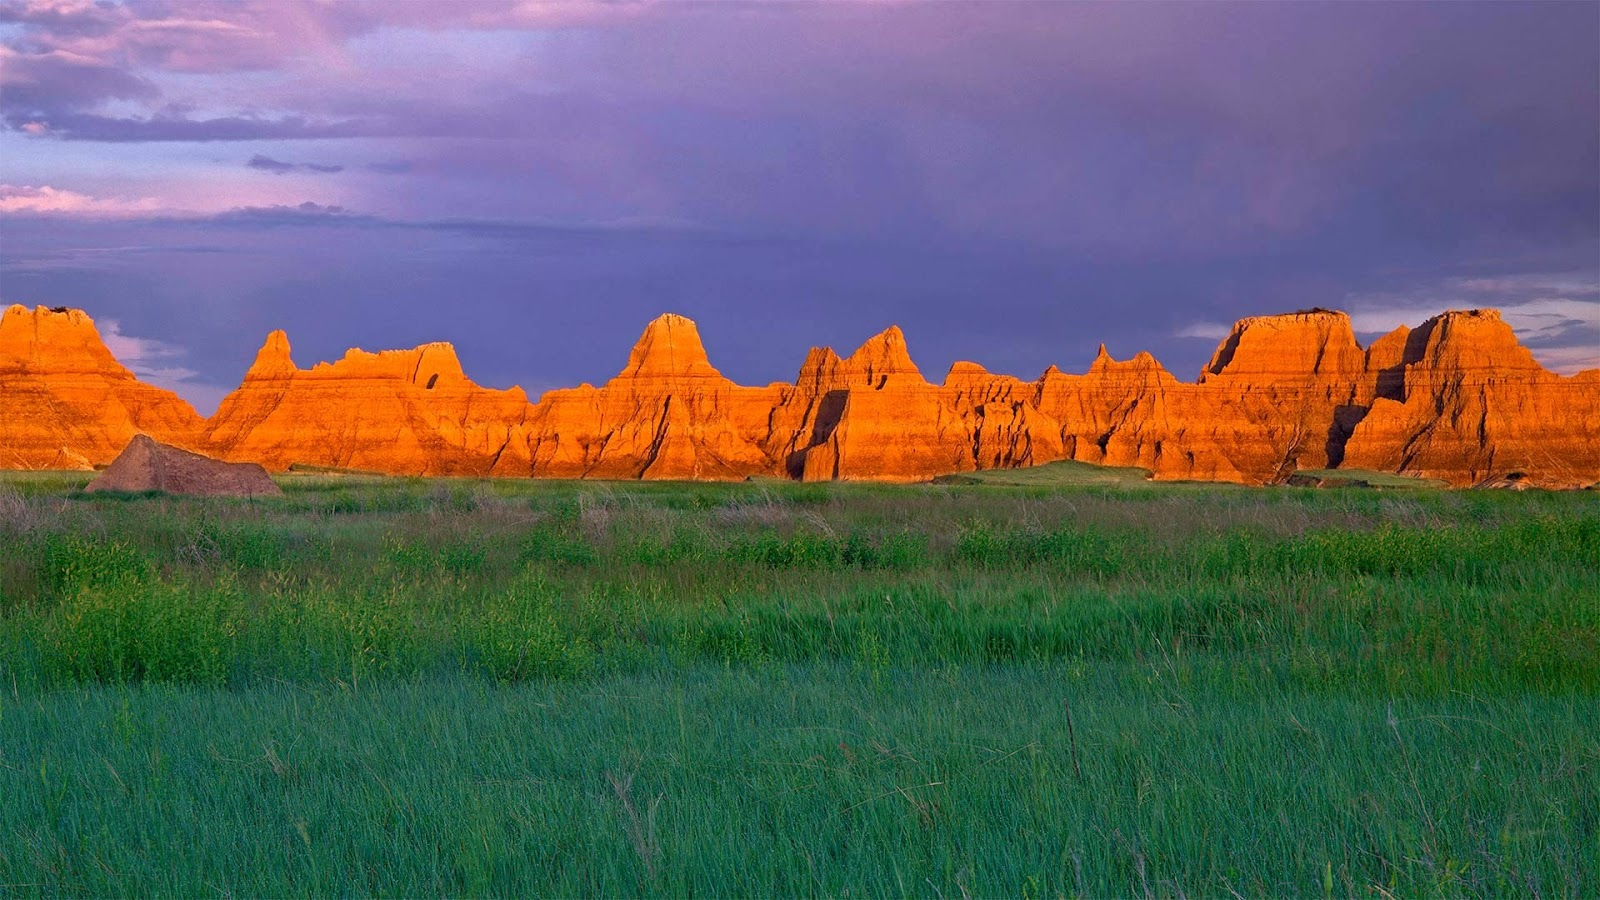 Prairie and pinnacles near Castle Trail in Badlands National Park, South Dakota © Danita Delimont/Getty Images